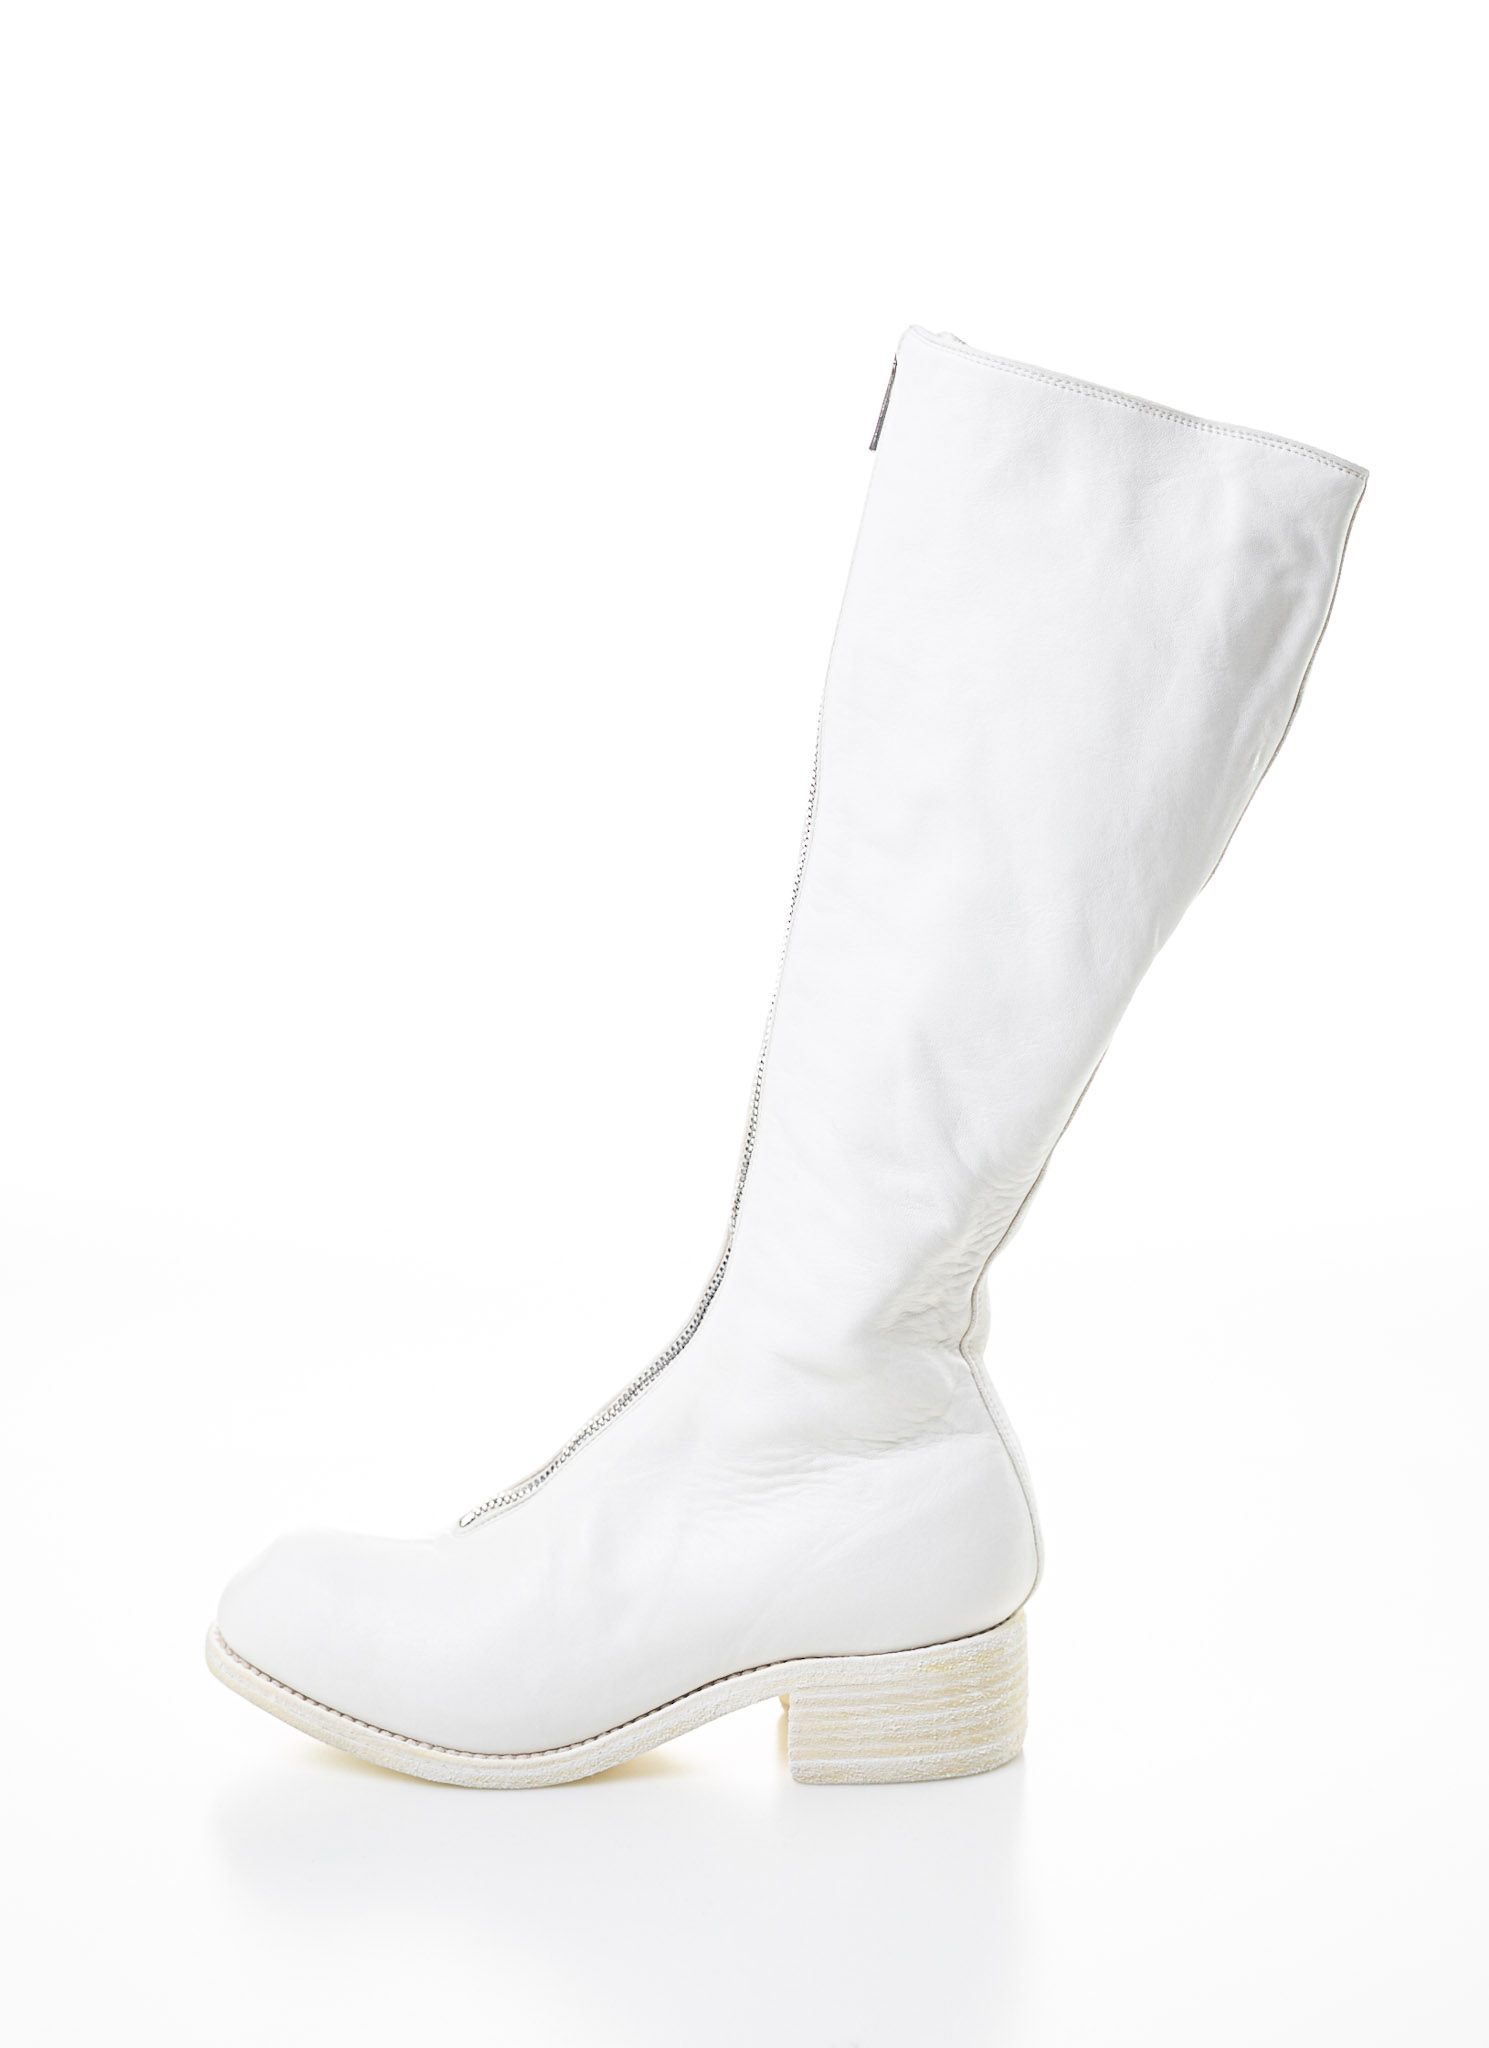 GuidiPl3 Zip BootWhiteHorse Leather Front GuidiPl3 CBredxoW